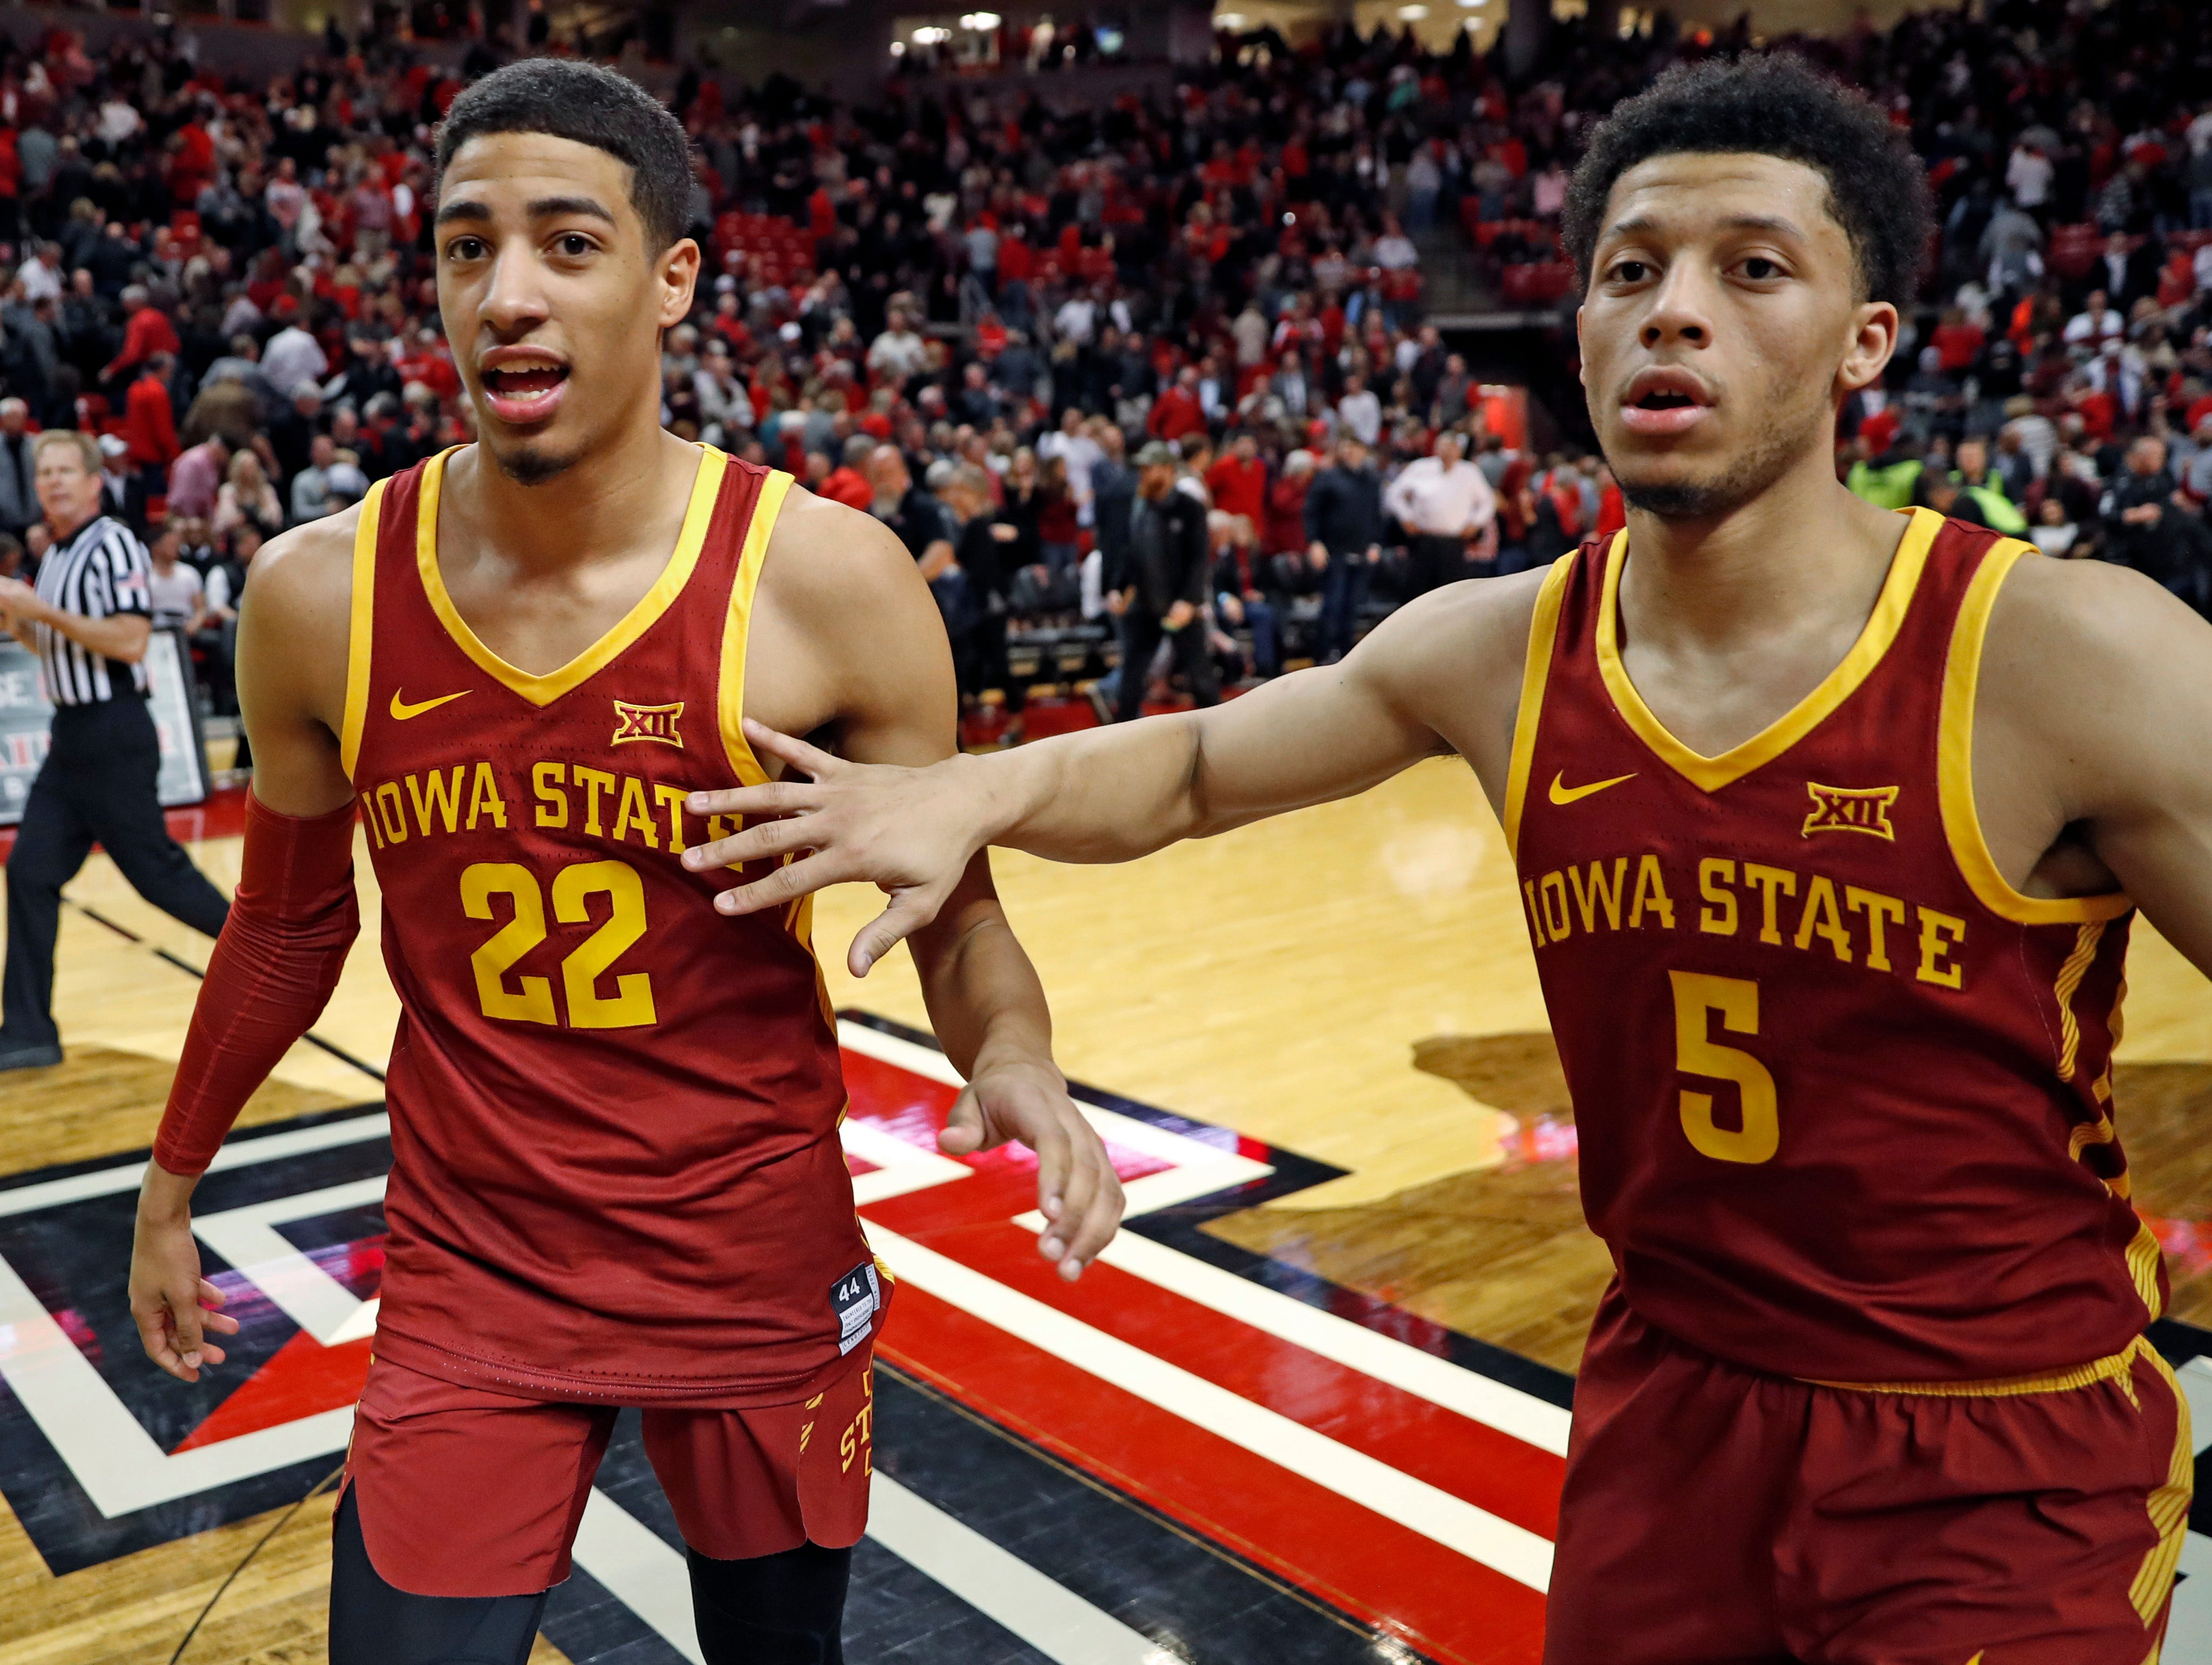 Iowa State's Tyrese Haliburton (22) and Lindell Wigginton (5) celebrate after the team's NCAA college basketball game against Texas Tech, Wednesday, Jan. 16, 2019, in Lubbock, Texas.